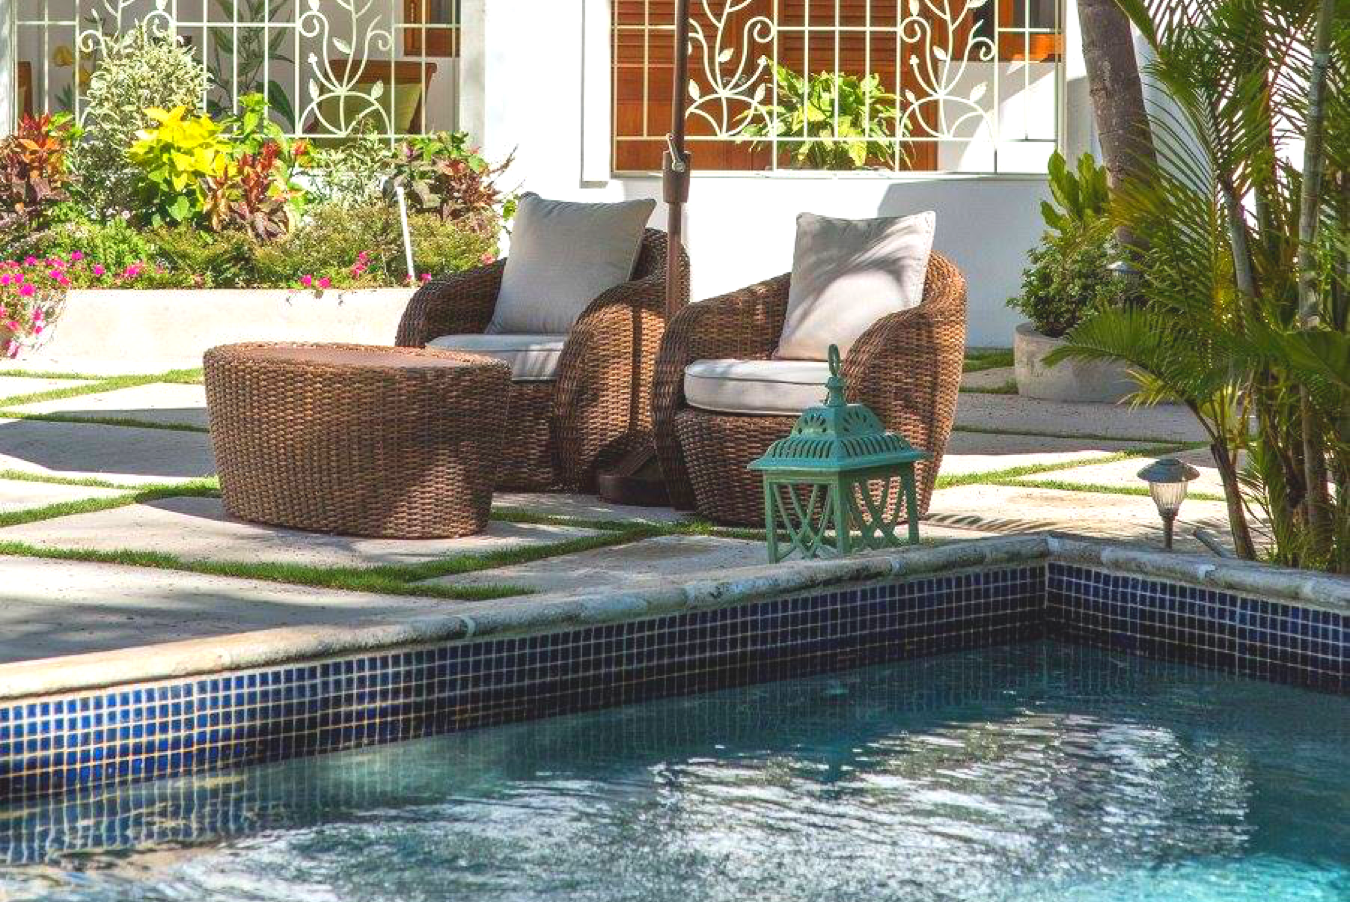 swimming pool with chair loungers in background